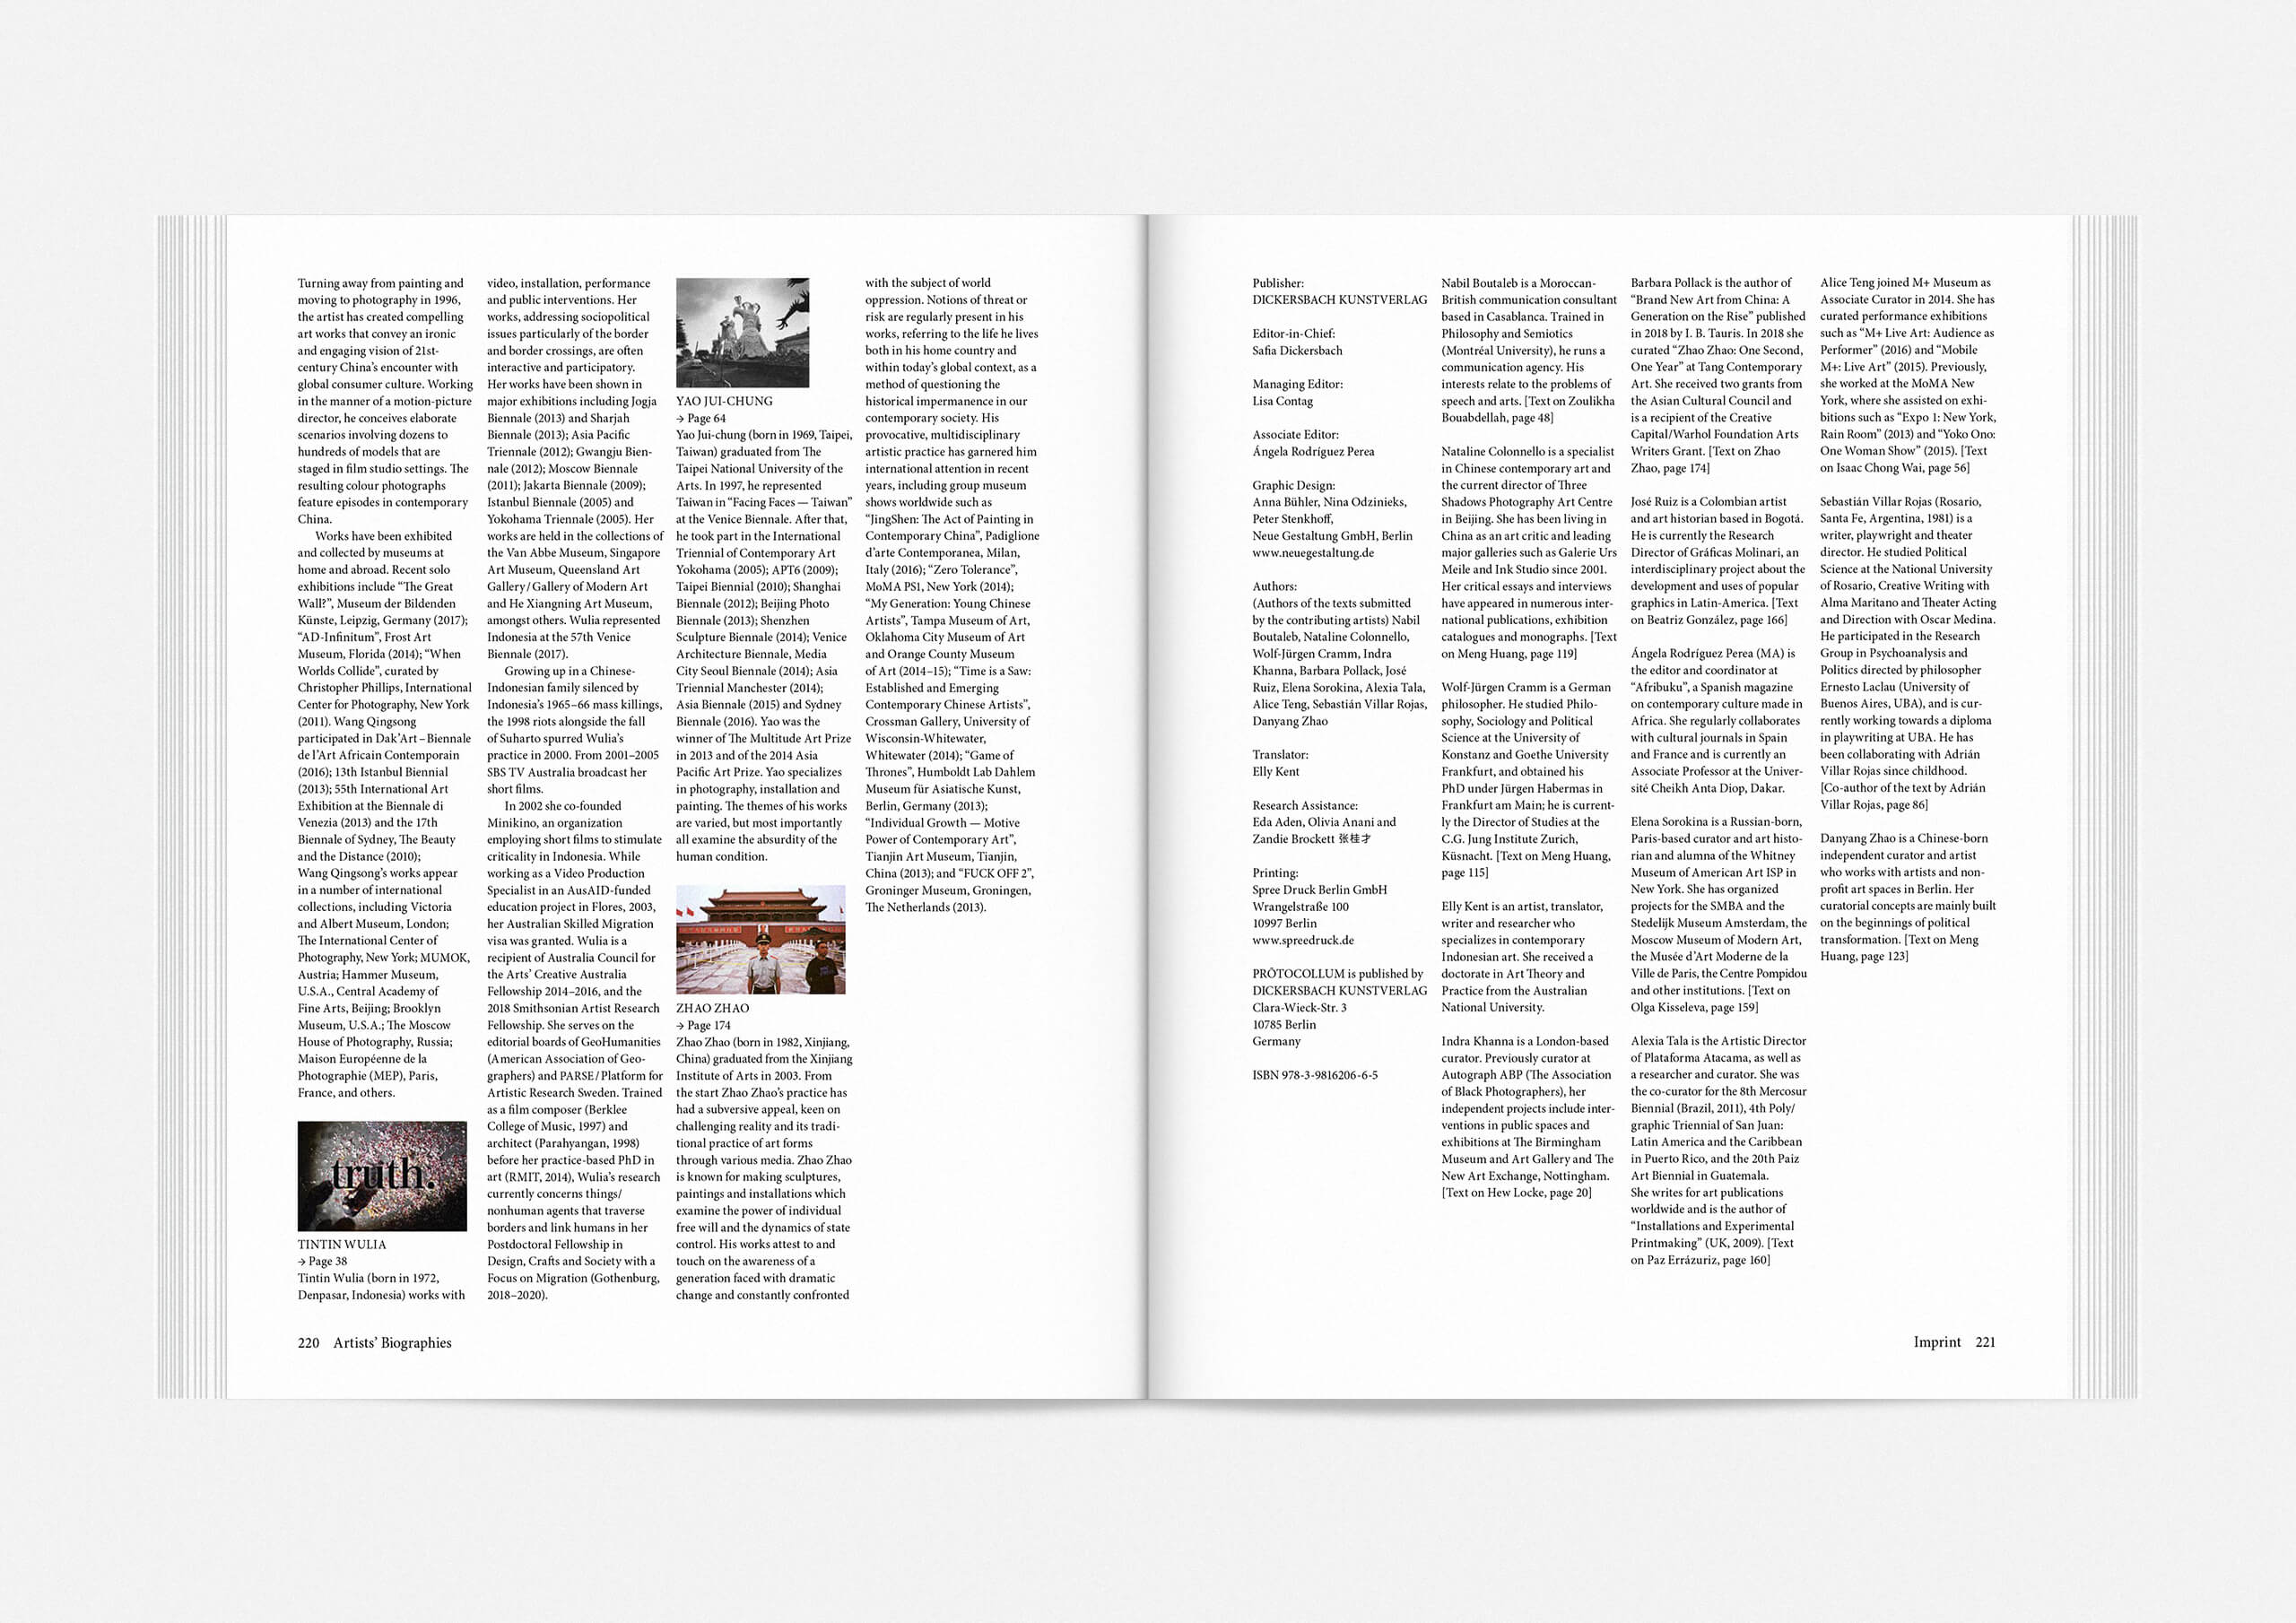 http://www.neuegestaltung.de/media/pages/clients/protocollum-issue-no-05/d61ddb4155-1597415138/protocollum-5-page-220221-ng.jpg